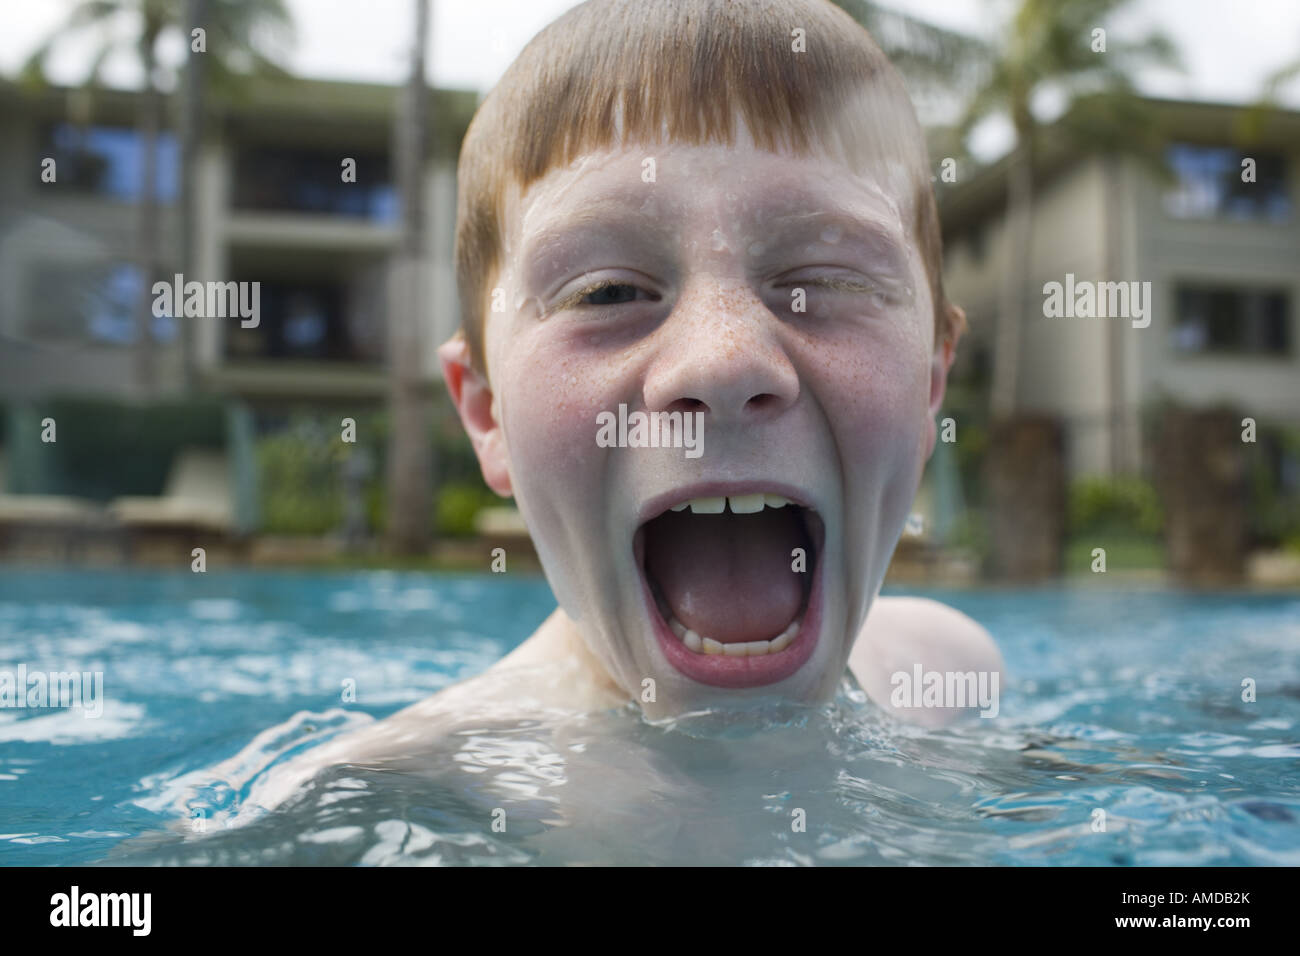 Boy in outdoor pool making funny face - Stock Image